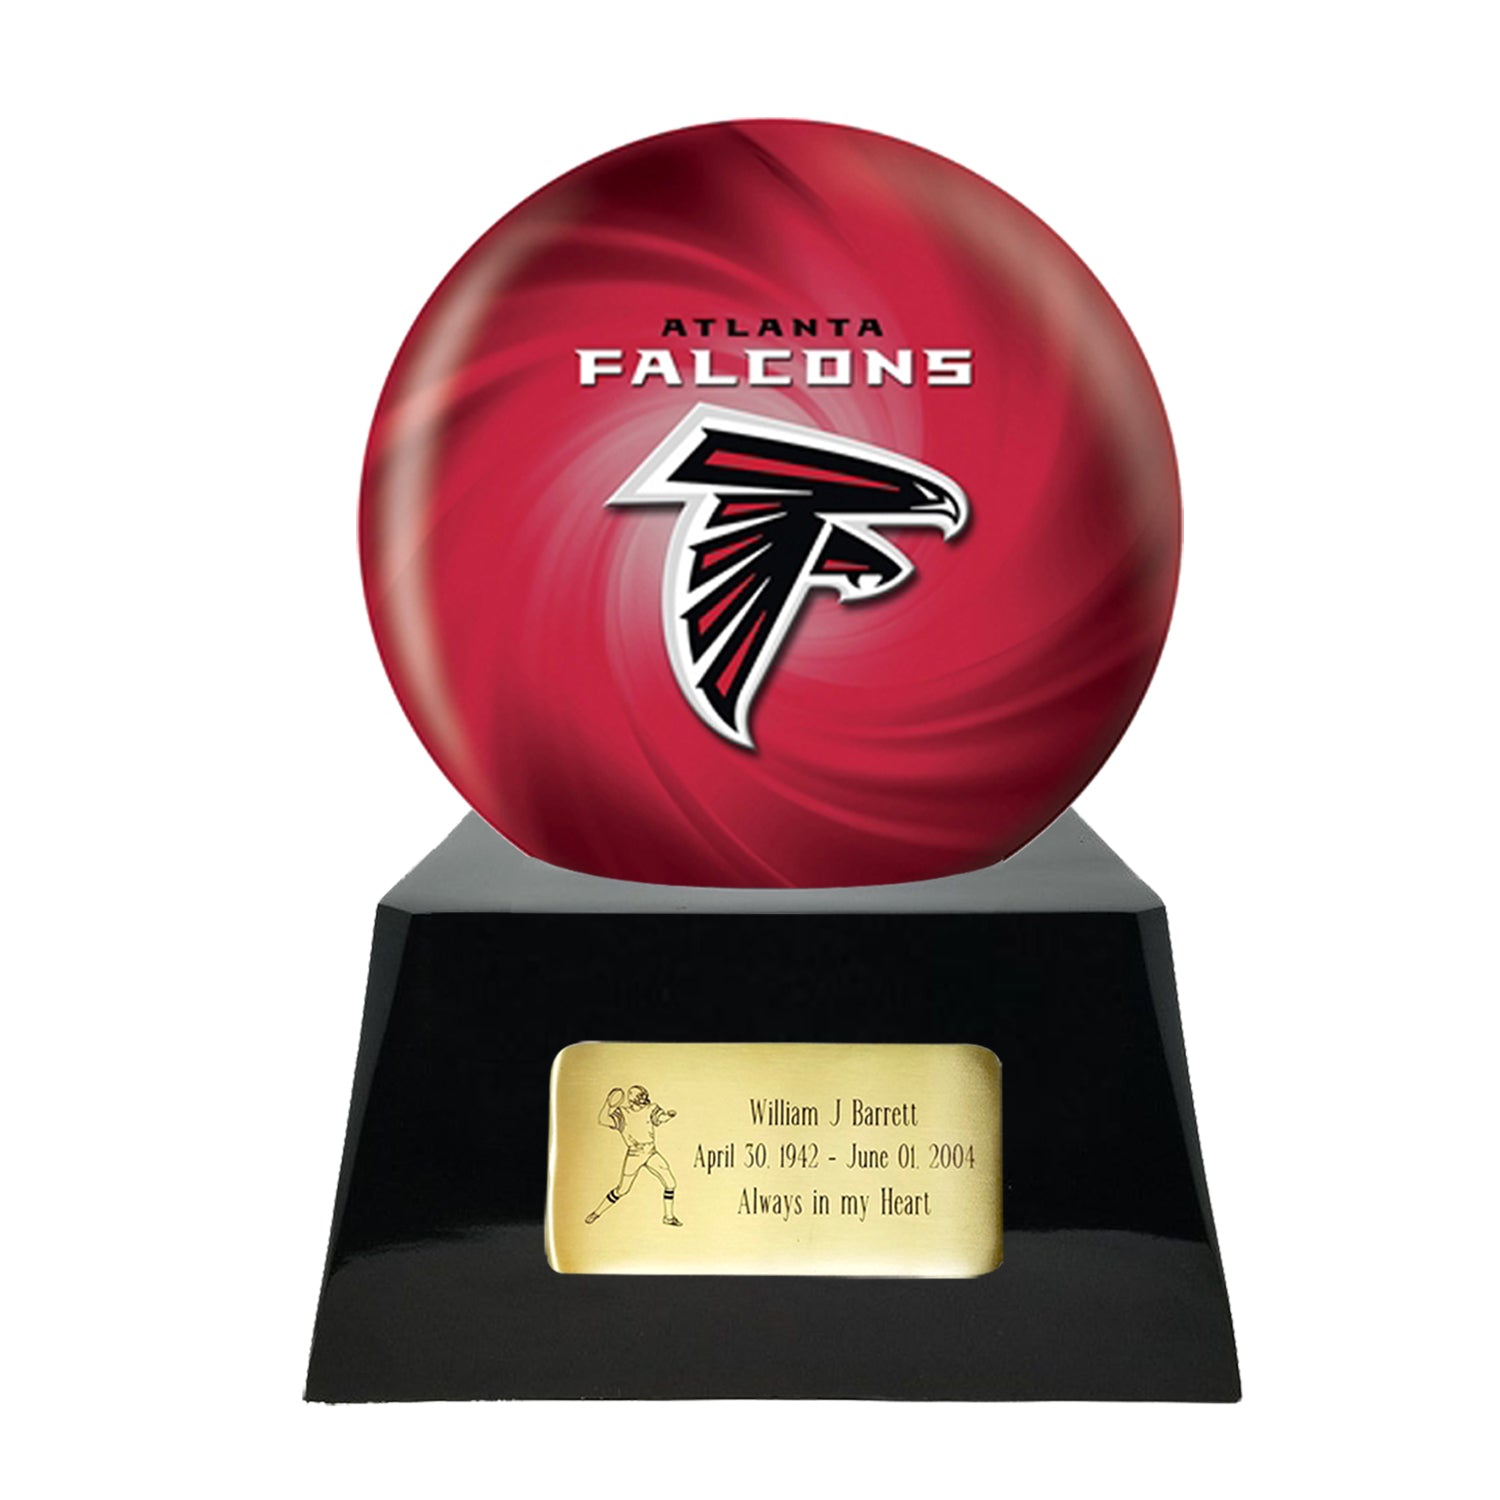 Team-Cremation-Urn: football-sports-team-cremation-urn-for-human-ashes-with-atlanta-falcons-ball-decor